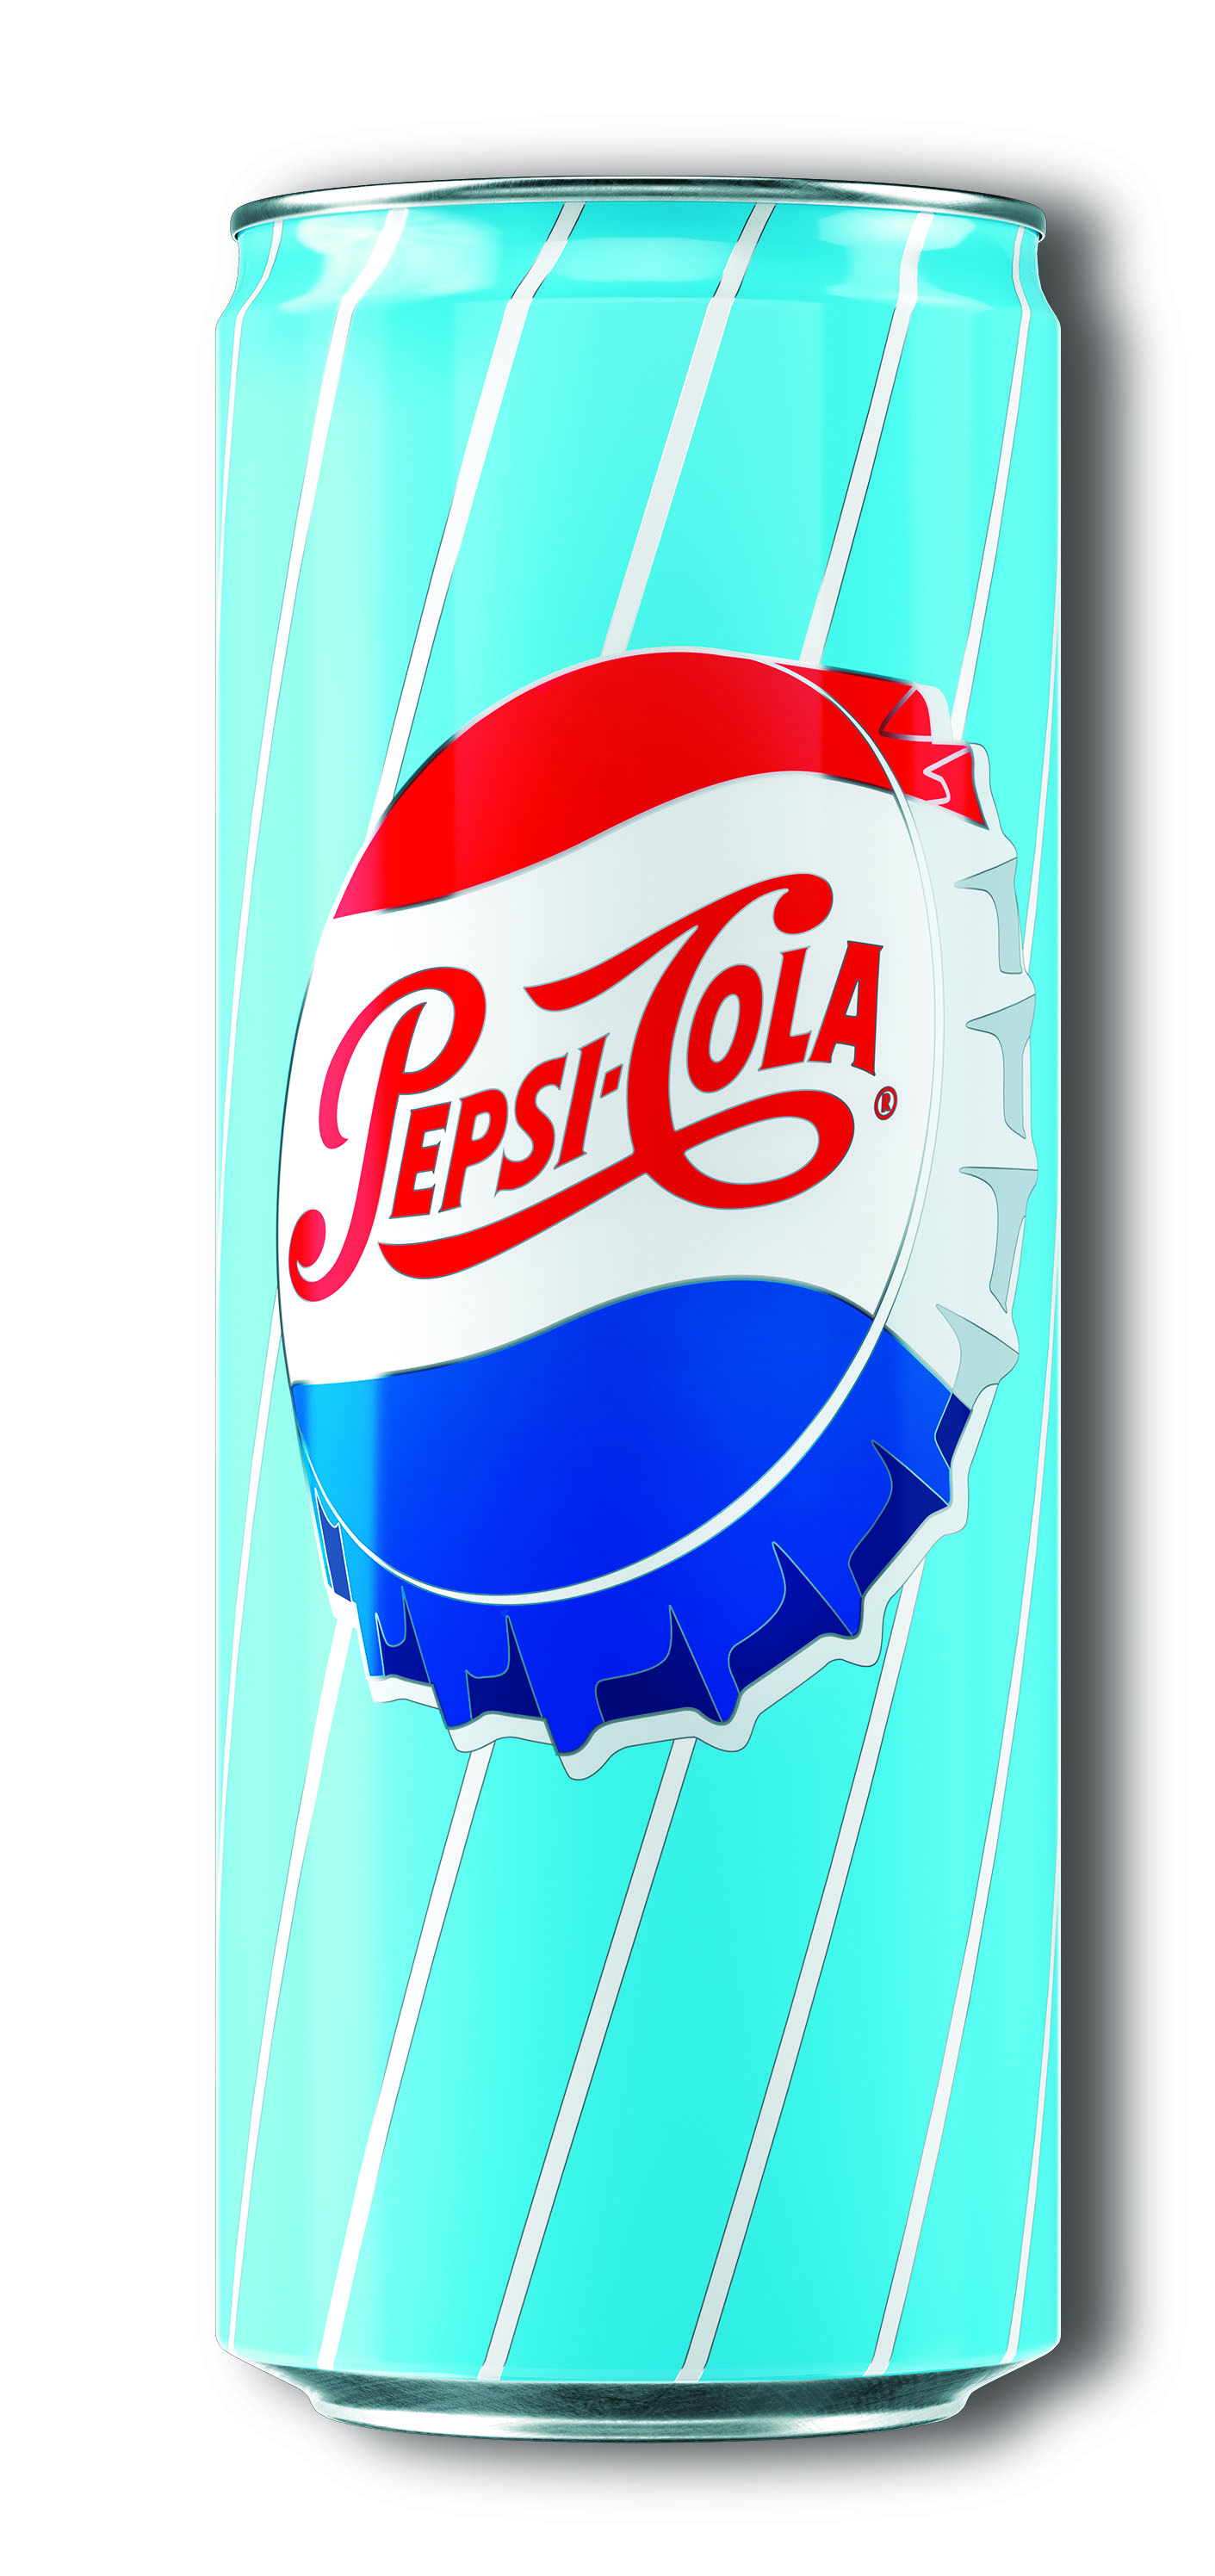 Pepsi takes fans back to the retro days by 'Celebrating